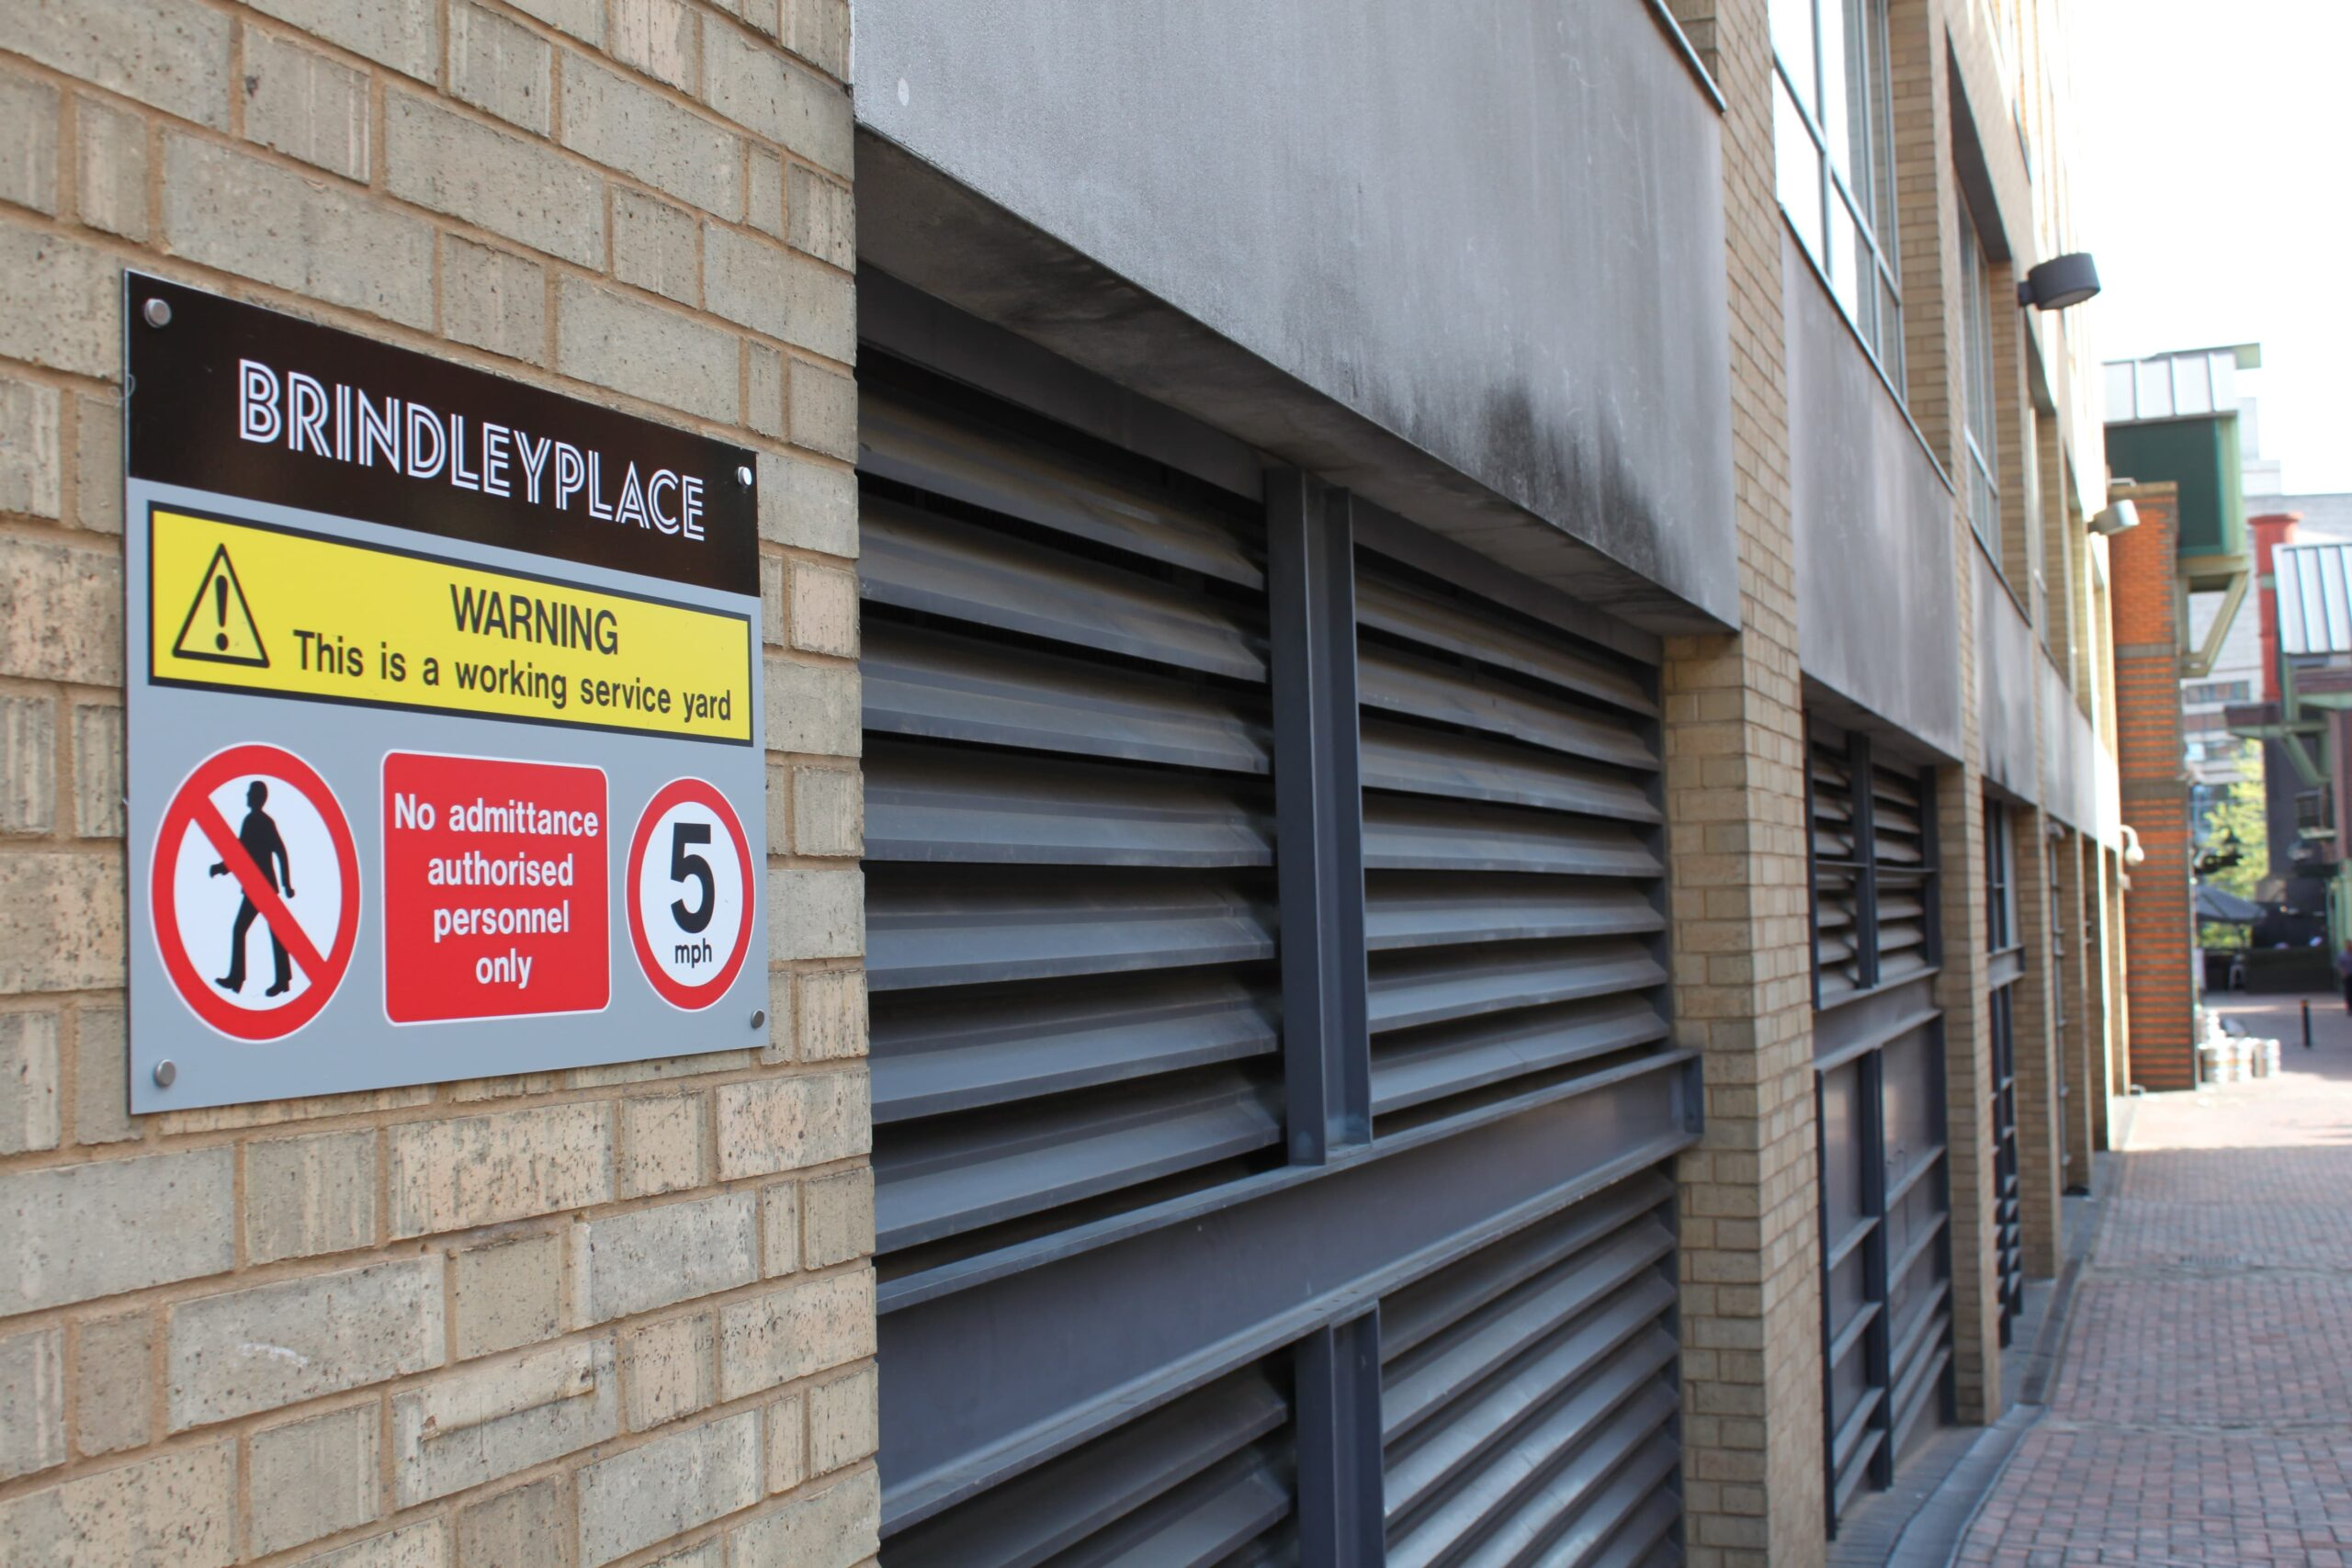 Brindley-place-warning-signs-Concept-Group.